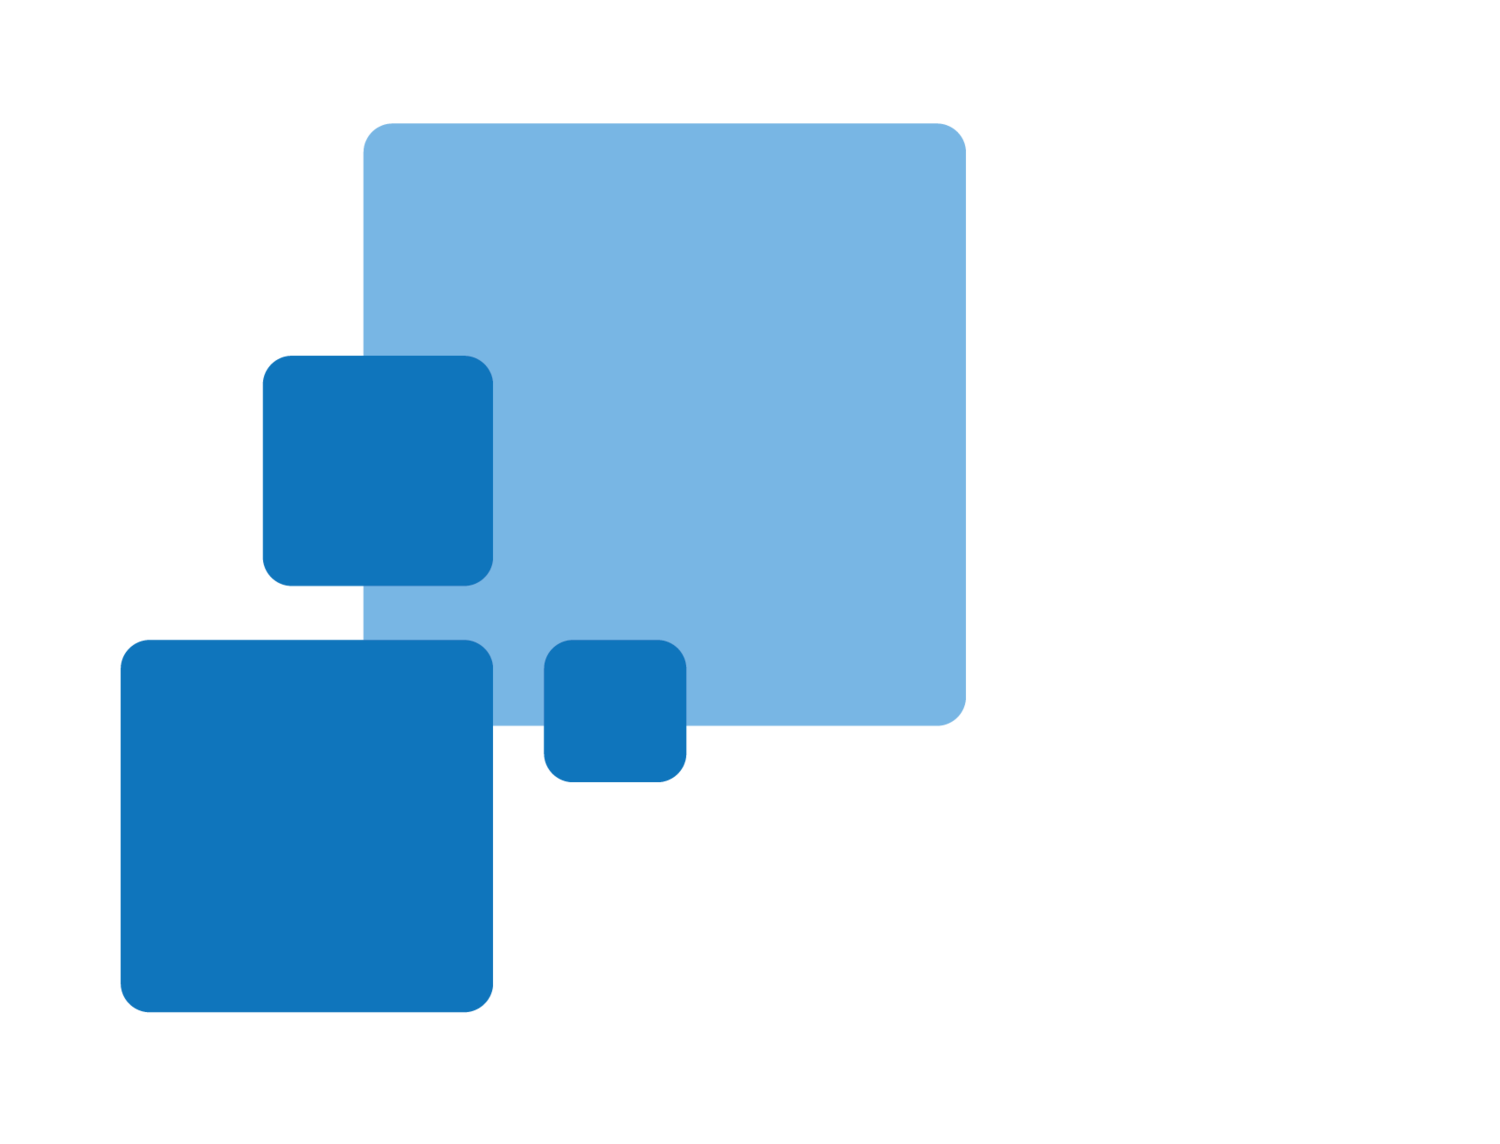 Lifestyle Healthcare Group, Inc.